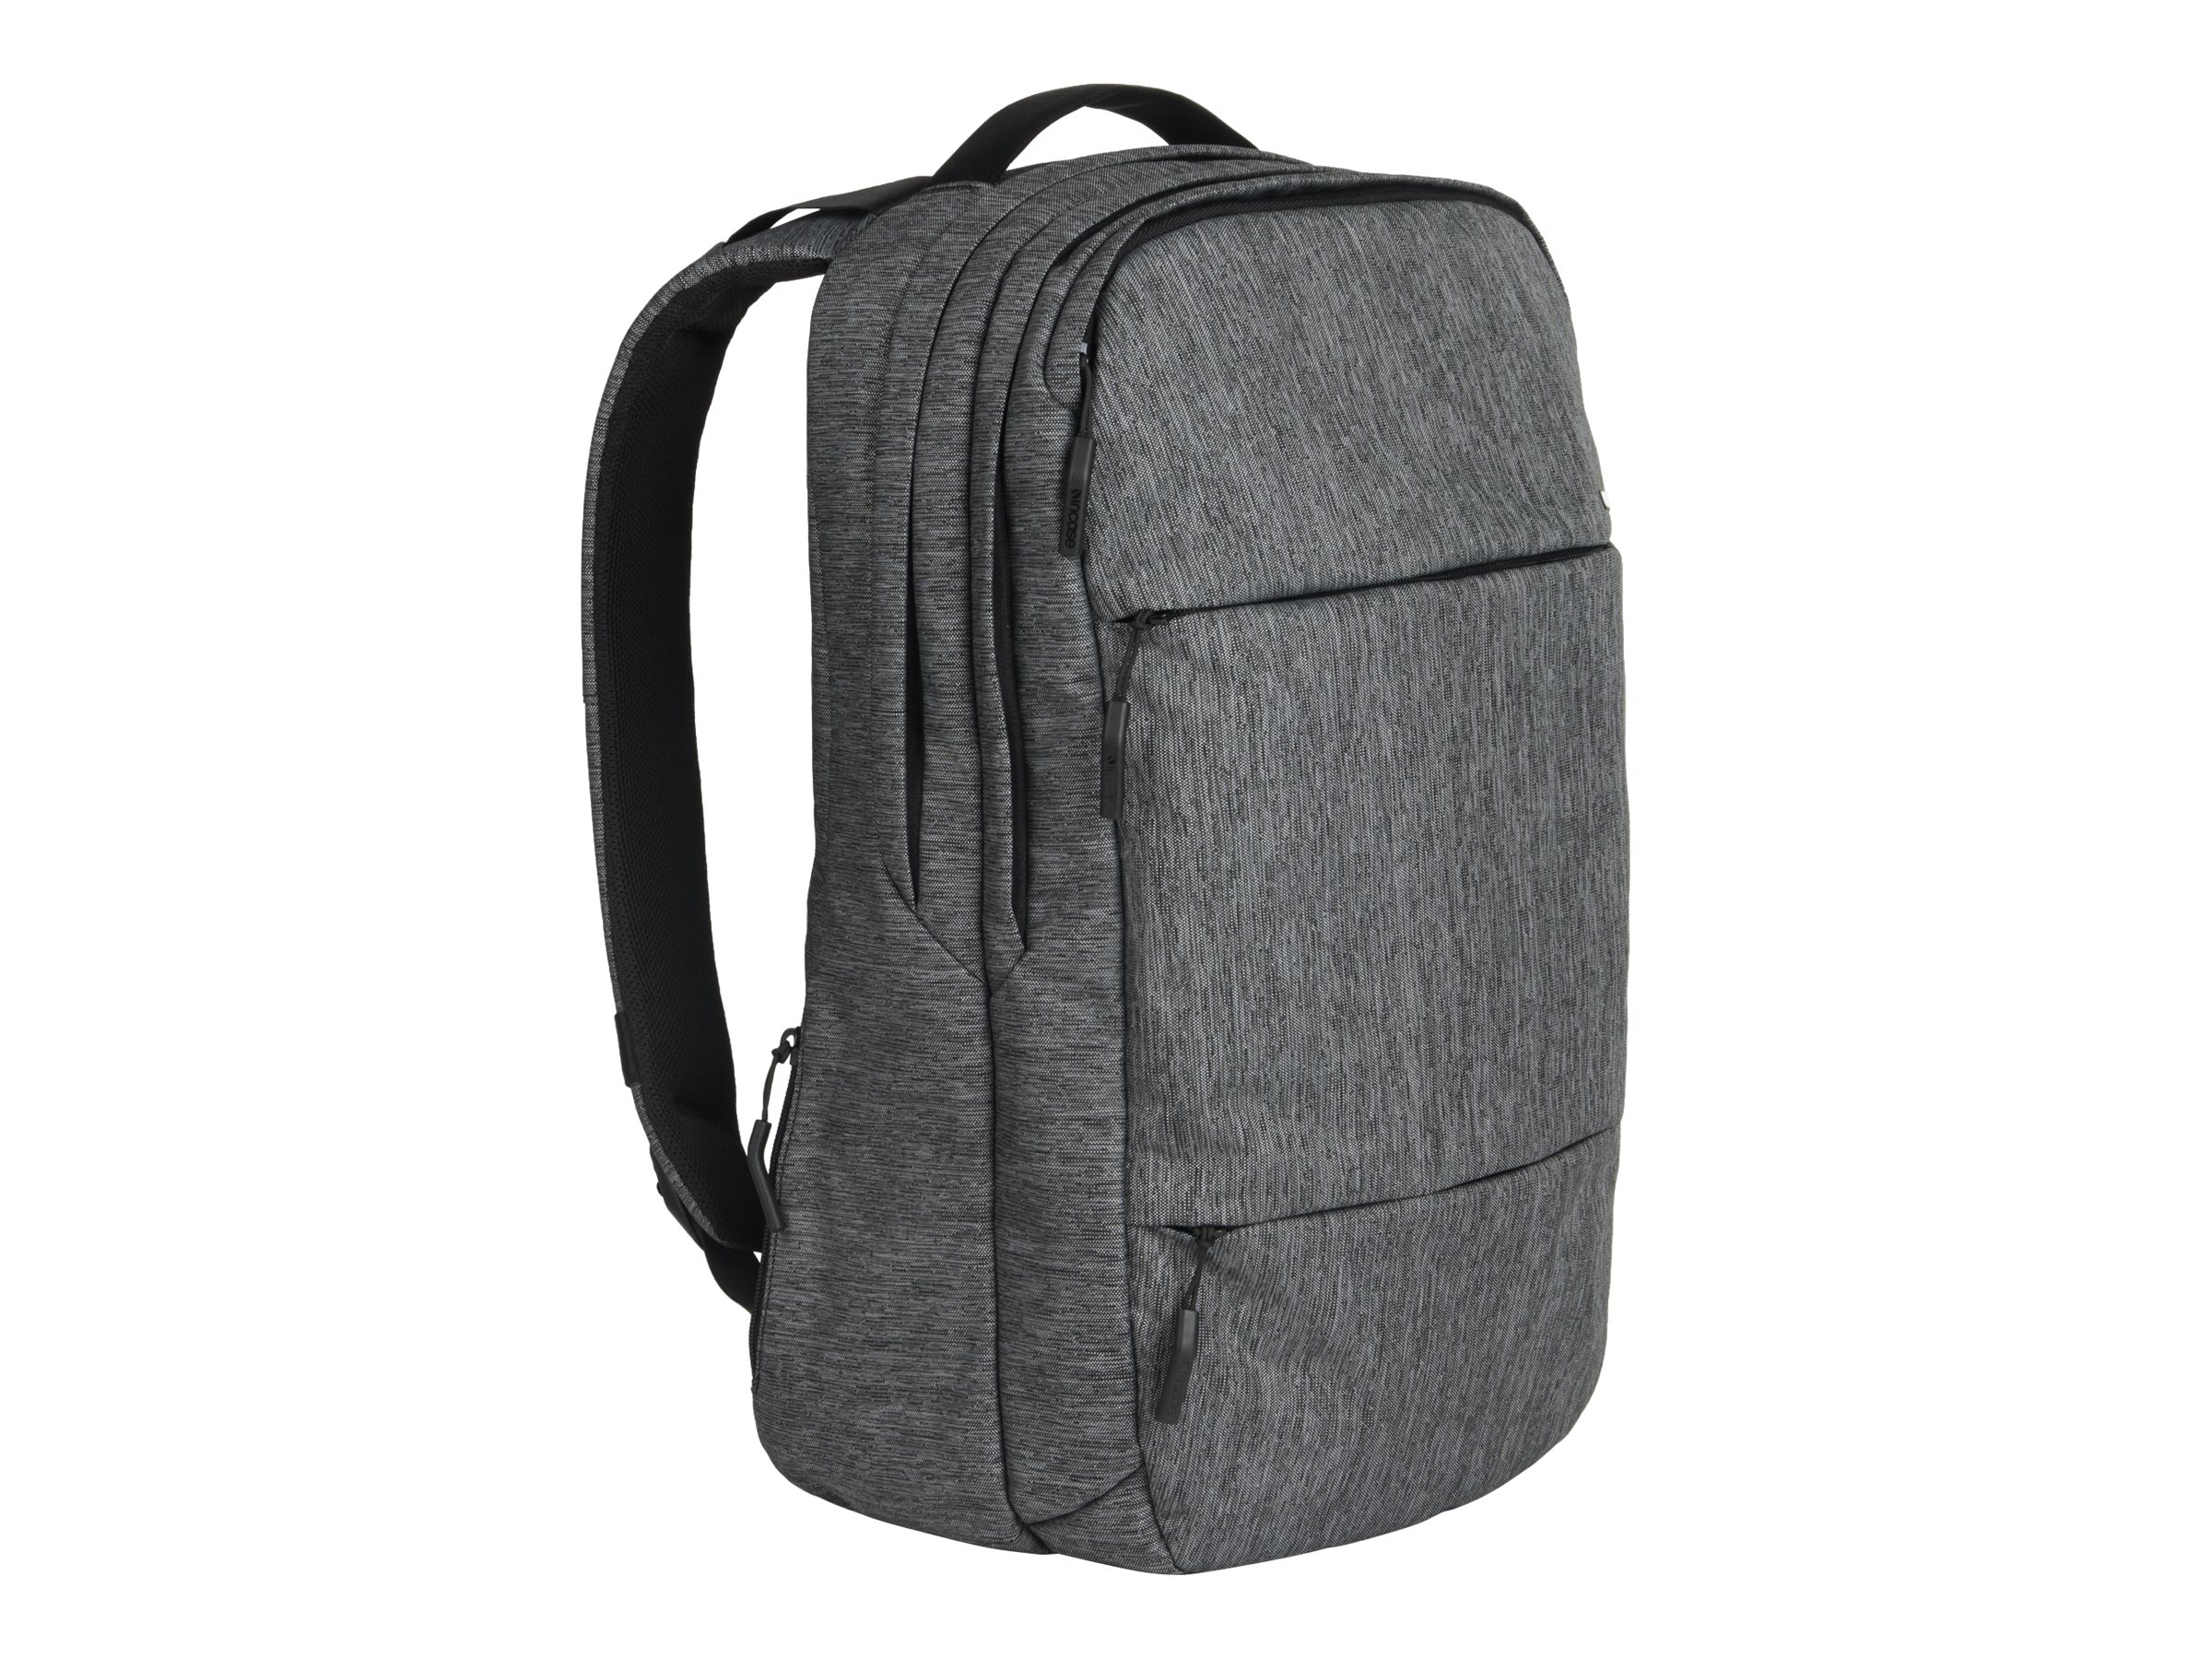 Incipio Incase City Backpack for 17 MacBook Pro, Heather Black Gunmetal Gray